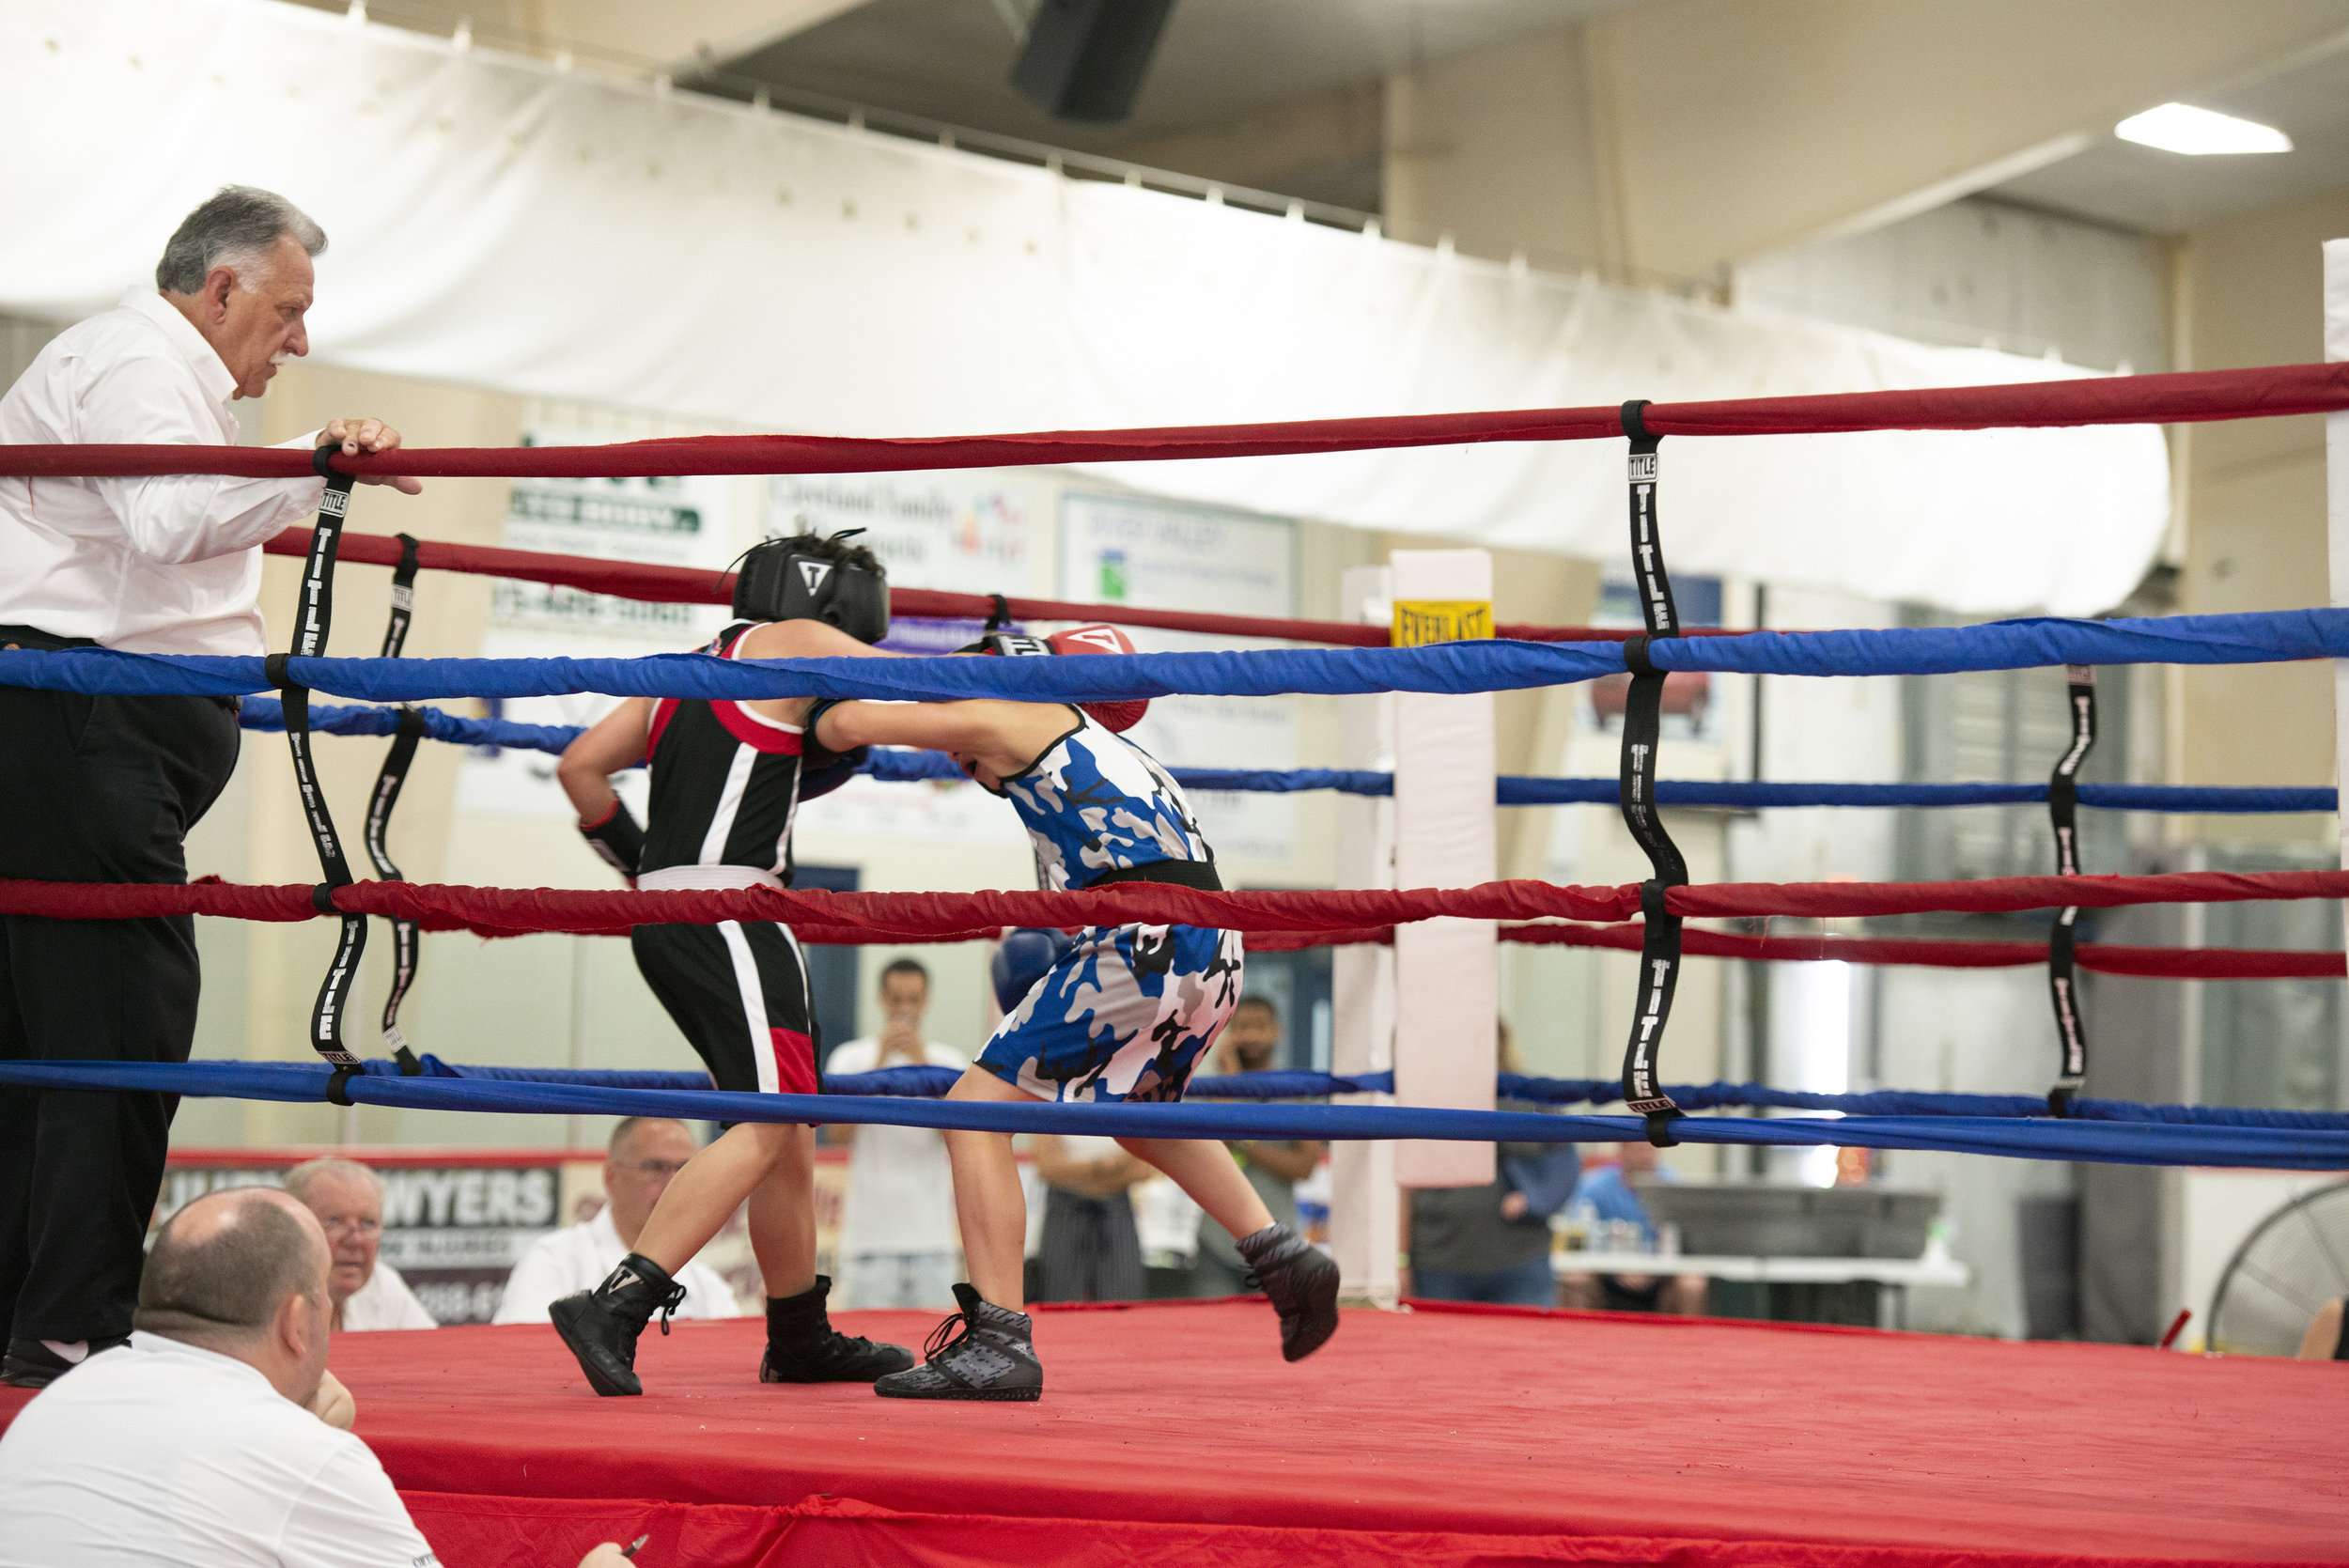 Boxing_Show6_Reverie_photography_Peek-a-Boo_Boxing_Gym_River Falls.jpg